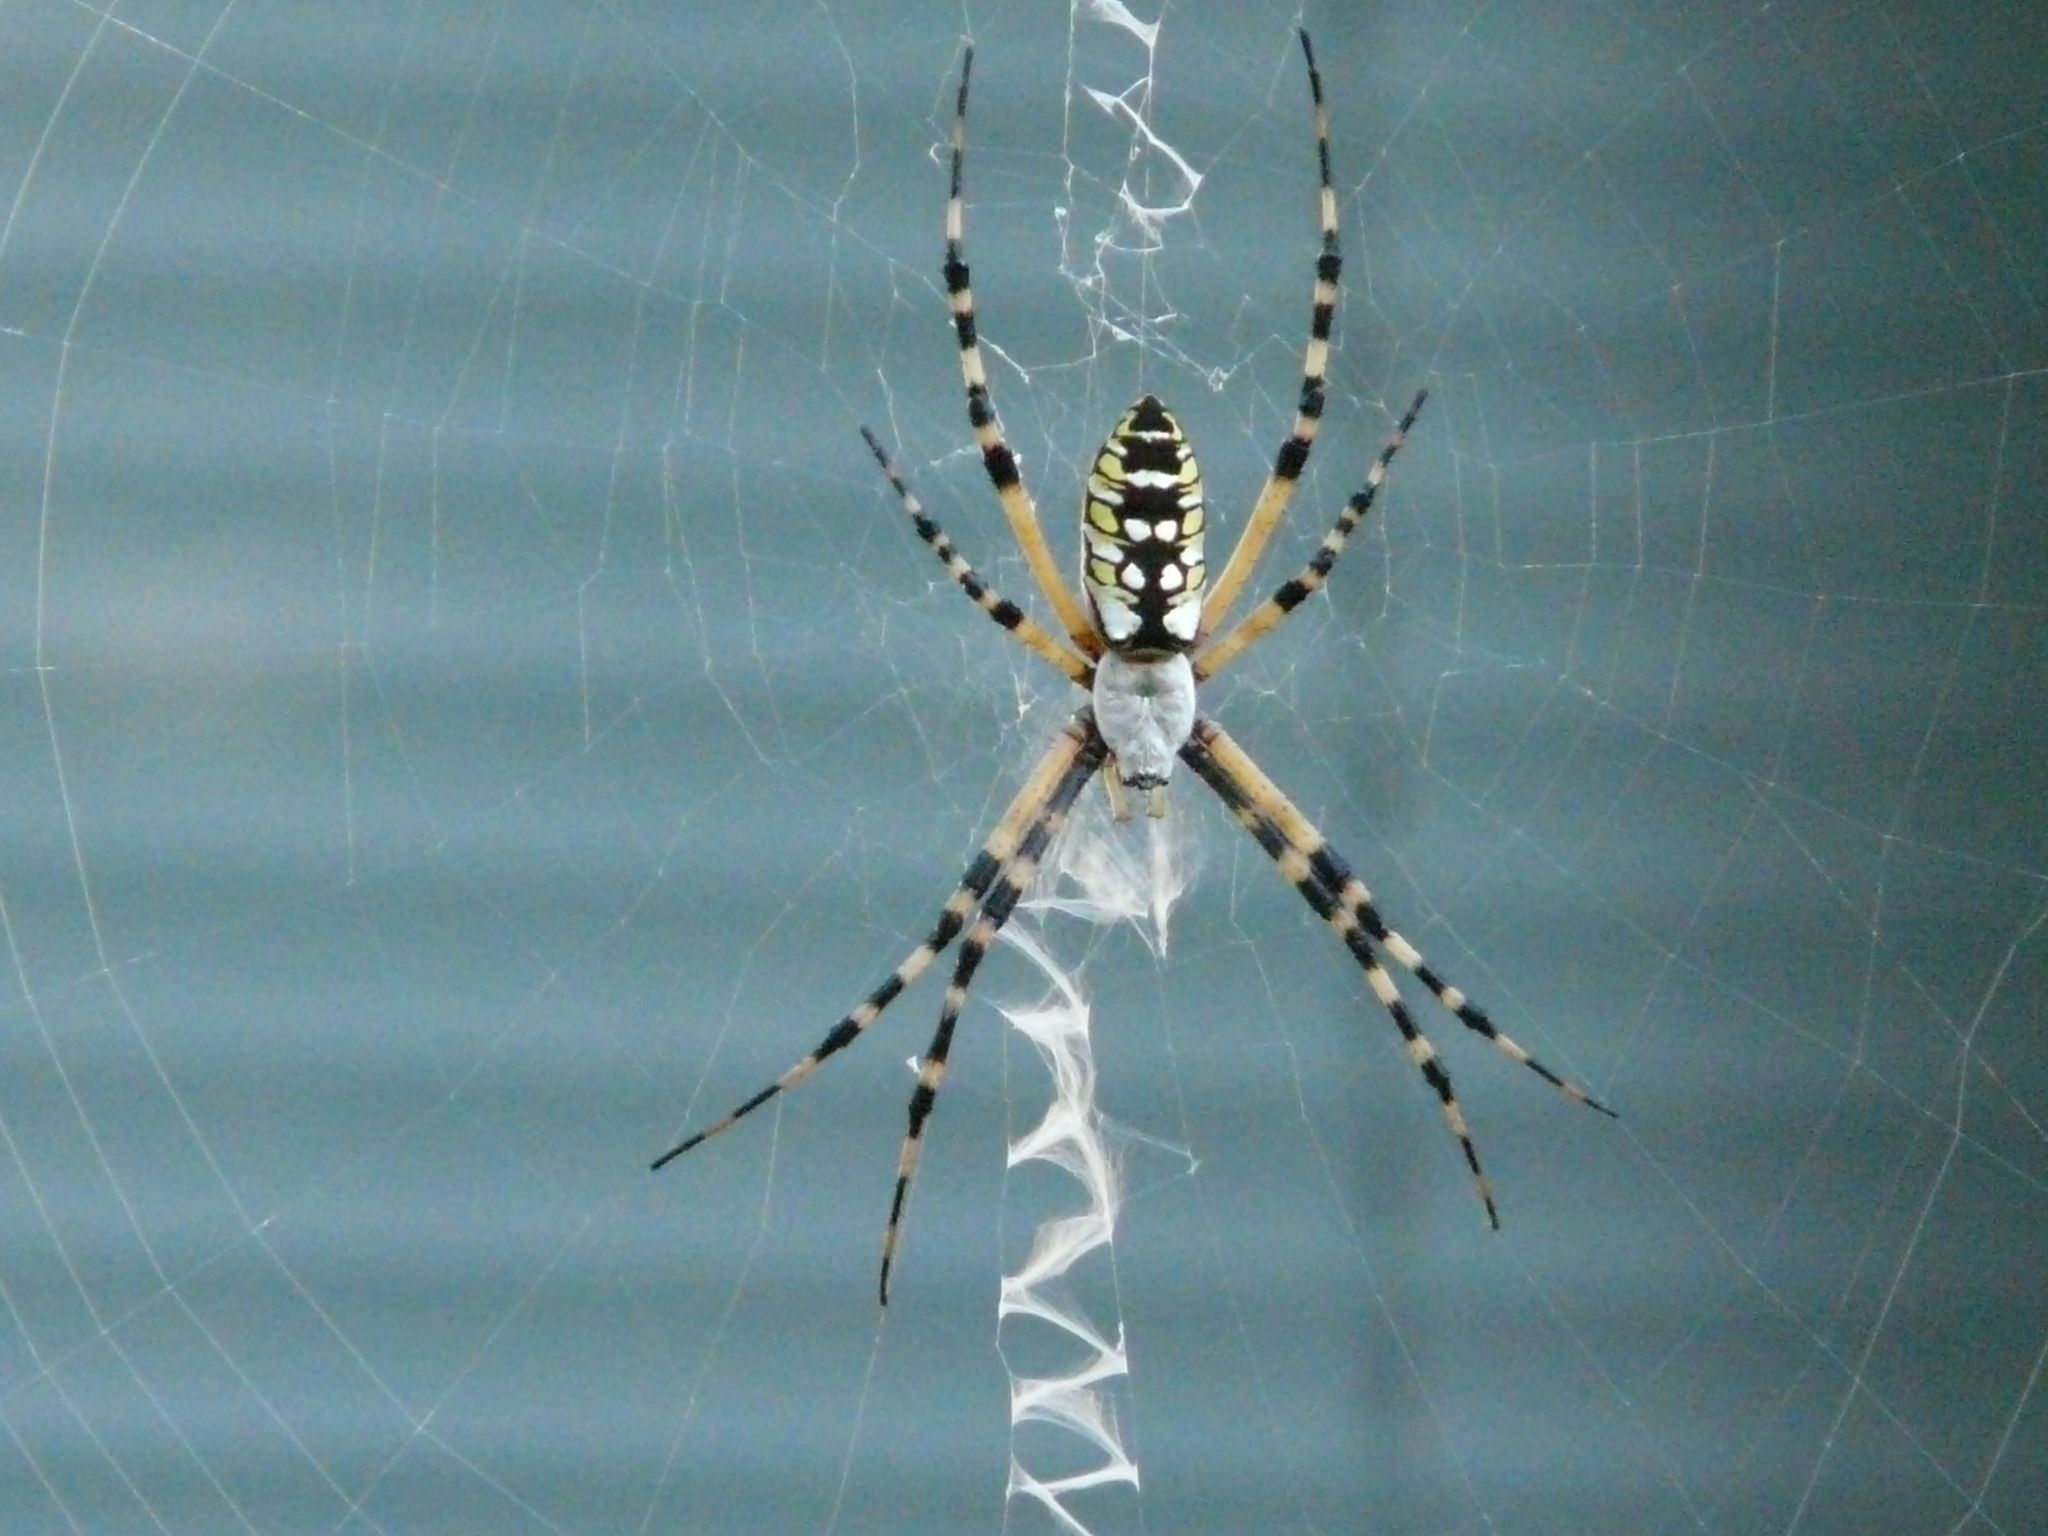 banana spider nephila clavipes typically a black and yellow spider